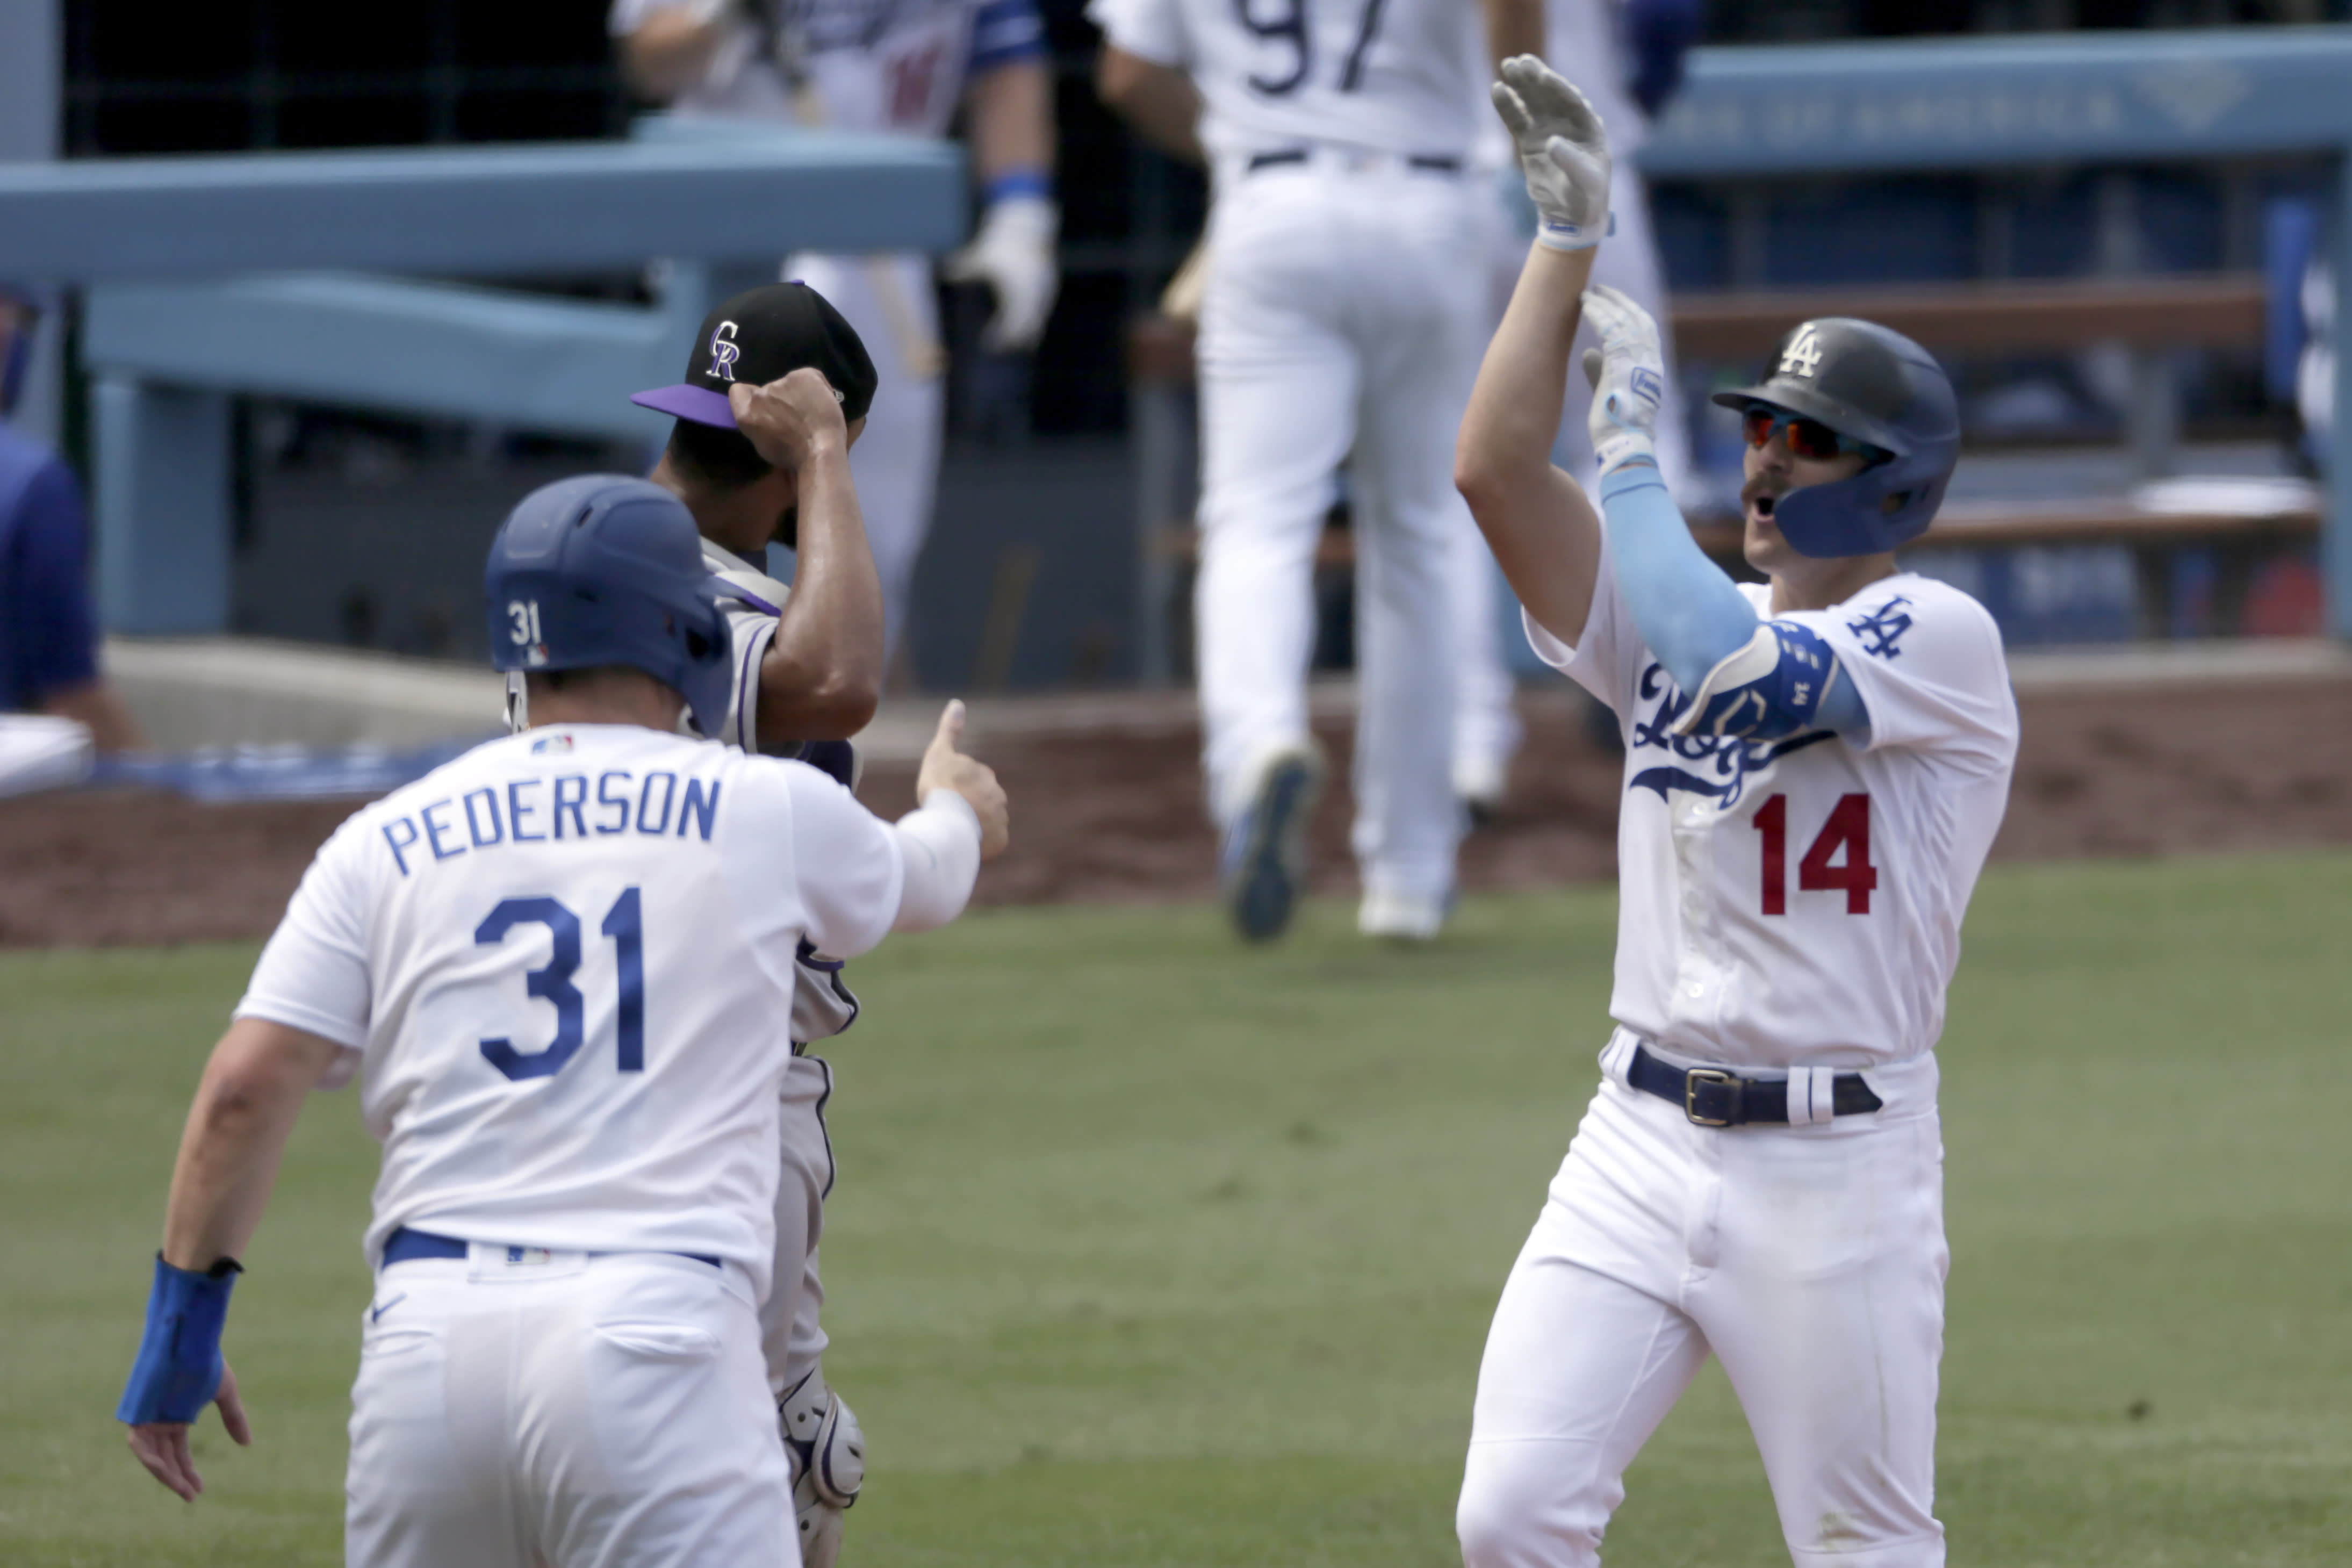 Los Angeles Dodgers' Enrique Hernandez, right, celebrates with Joc Pederson, front left, after hitting a three-run home run as Colorado Rockies catcher Elias Diaz, back left, looks away during the fourth inning of a baseball game in Los Angeles, Sunday, Aug. 23, 2020. (AP Photo/Alex Gallardo)